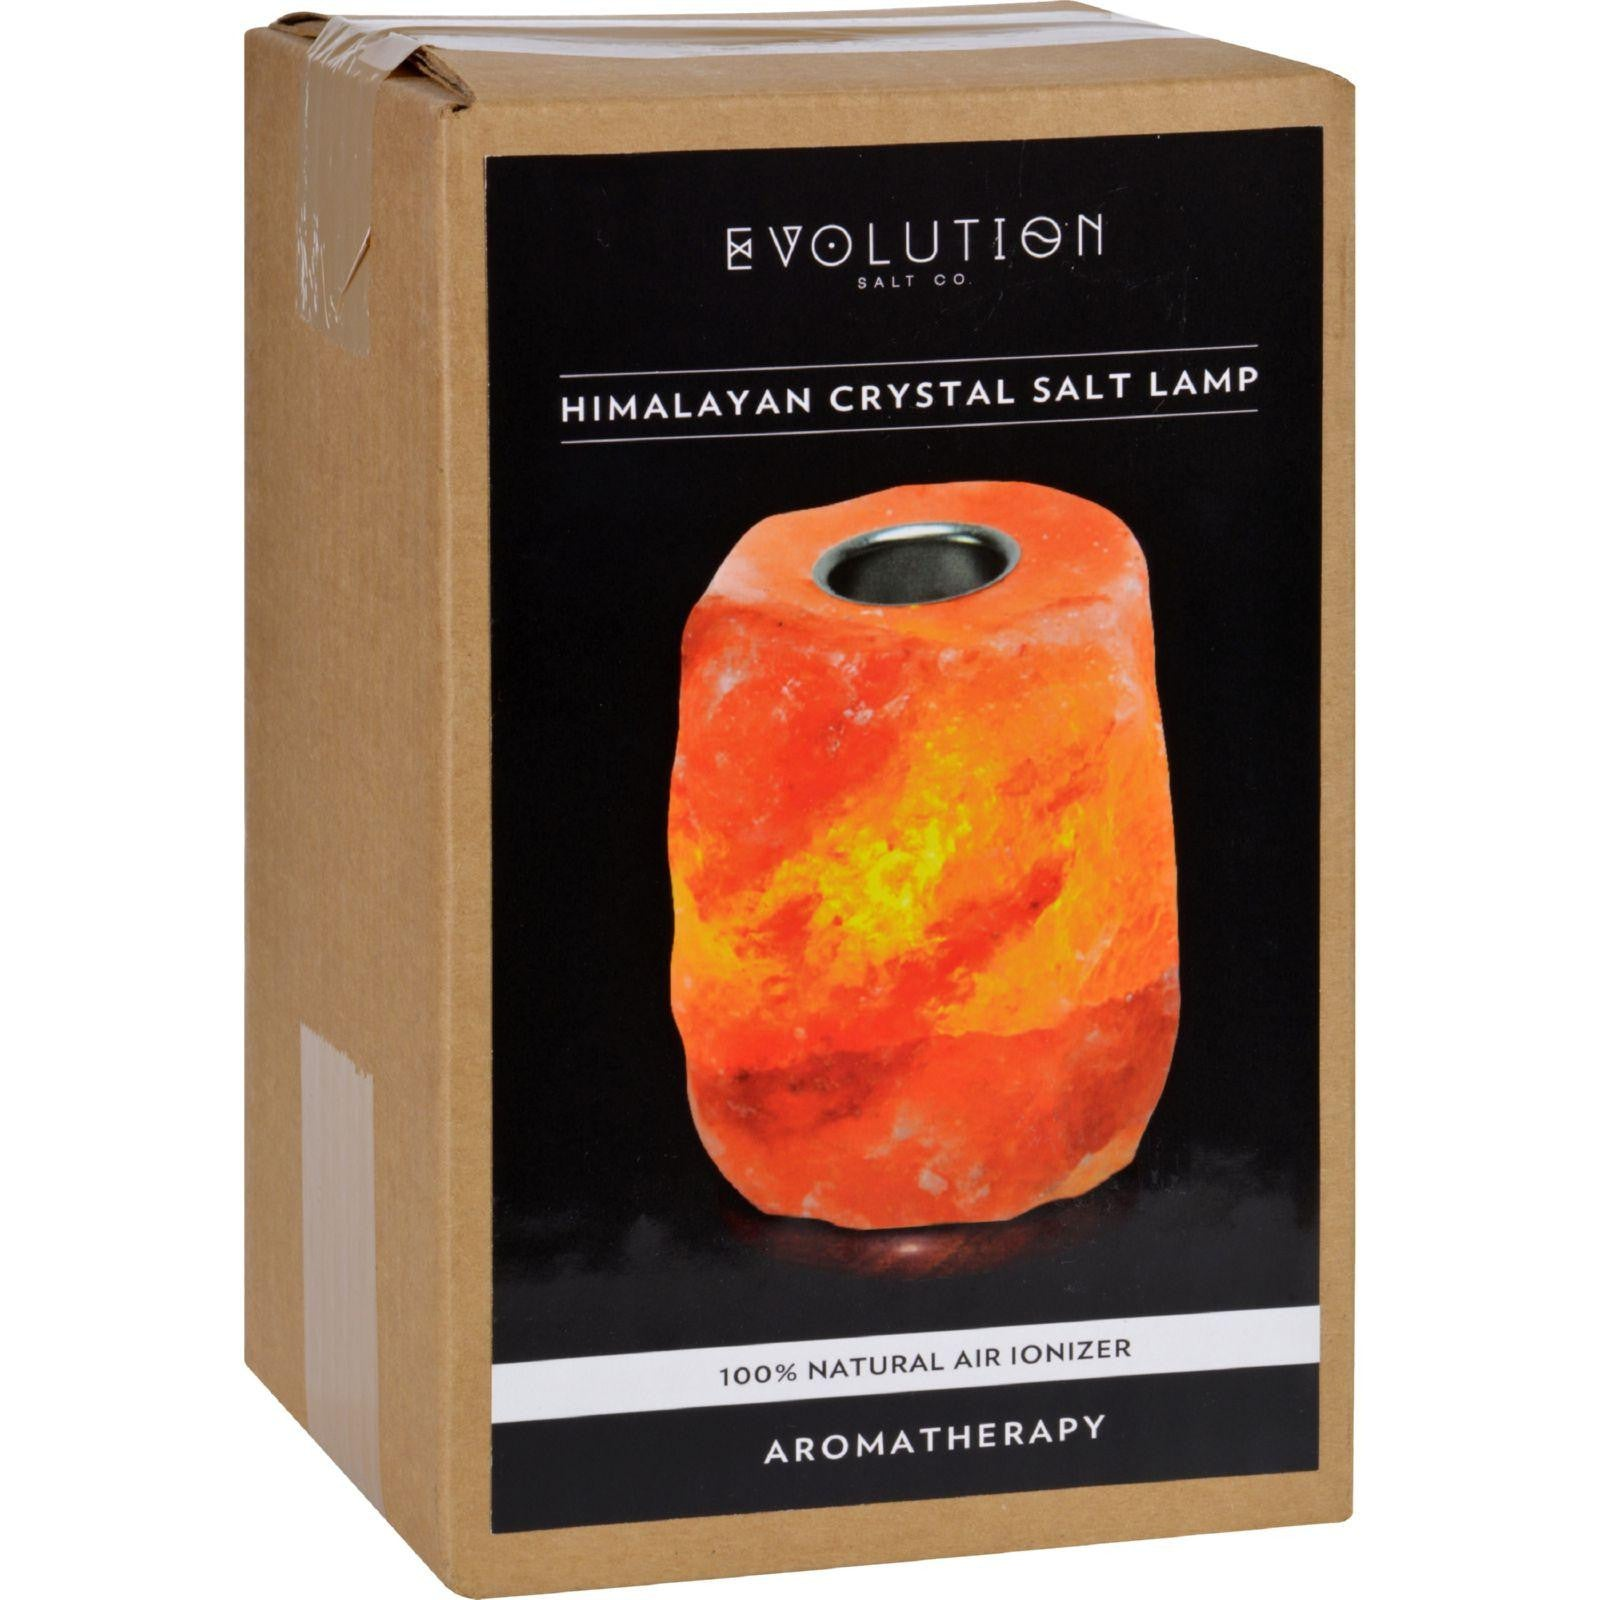 Evolution Salt Crystal Salt Lamp Aromatherapy 1...